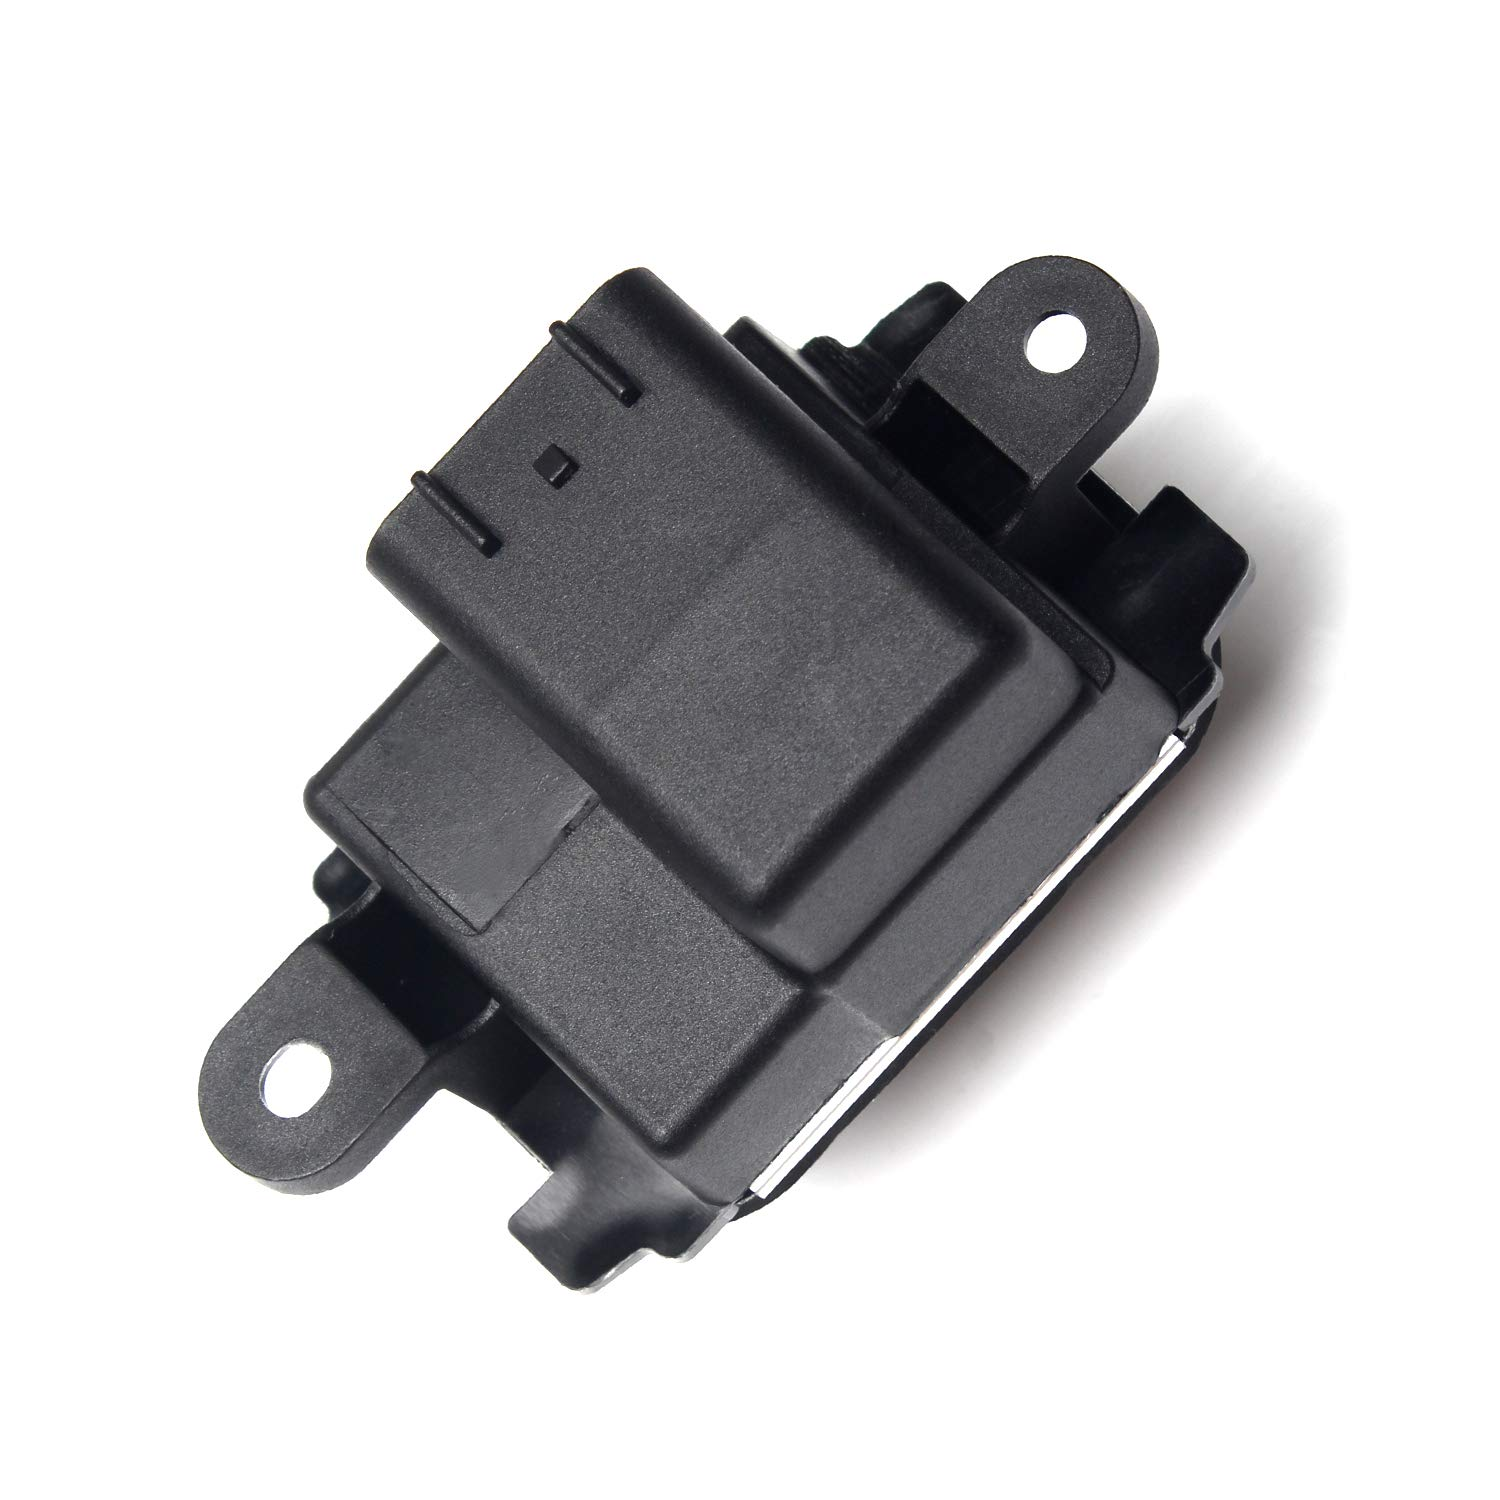 Beneges HVAC Blower Motor Fan Resistor AC Heater Compatible with 2008-2018 Ford Expedition Explorer F150 F250 F350 F450 Super Duty Escape Mercury Mariner Sable Lincoln MKT MKS YH-1827 9L34-19E624-AC